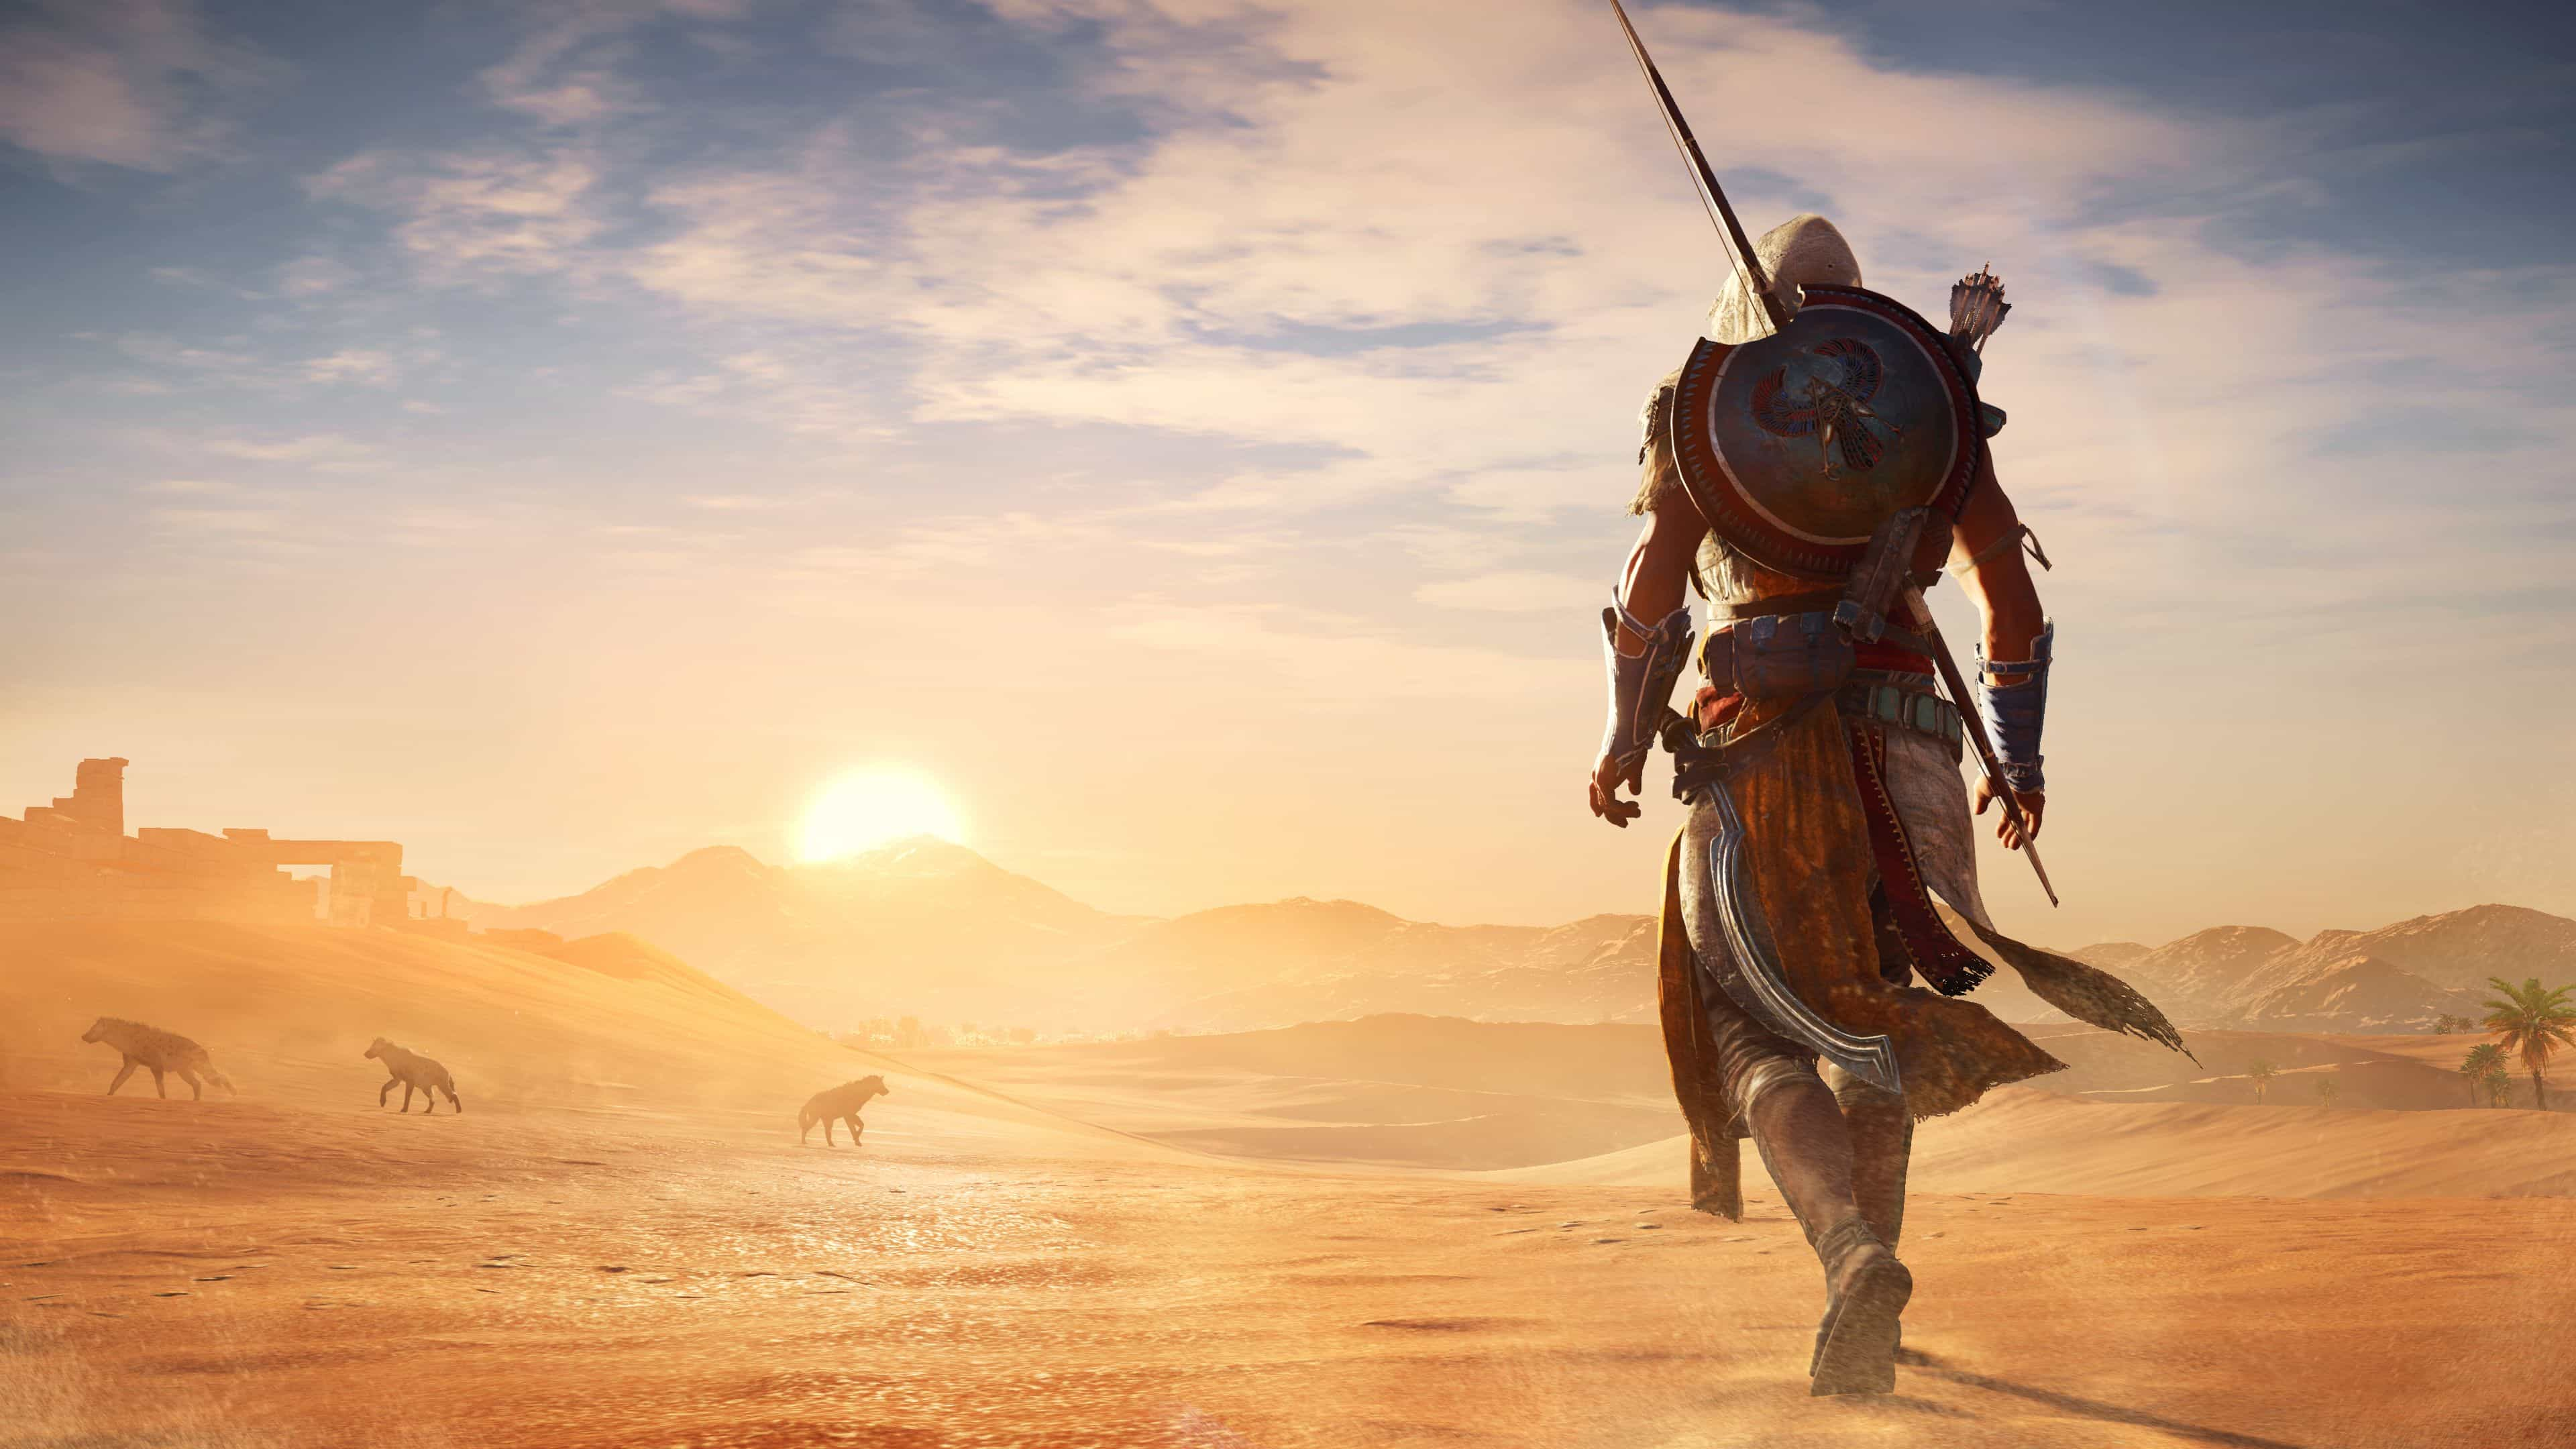 Here's Assassin's Creed Origins' New Curse Of The Pharaohs DLC In 4K